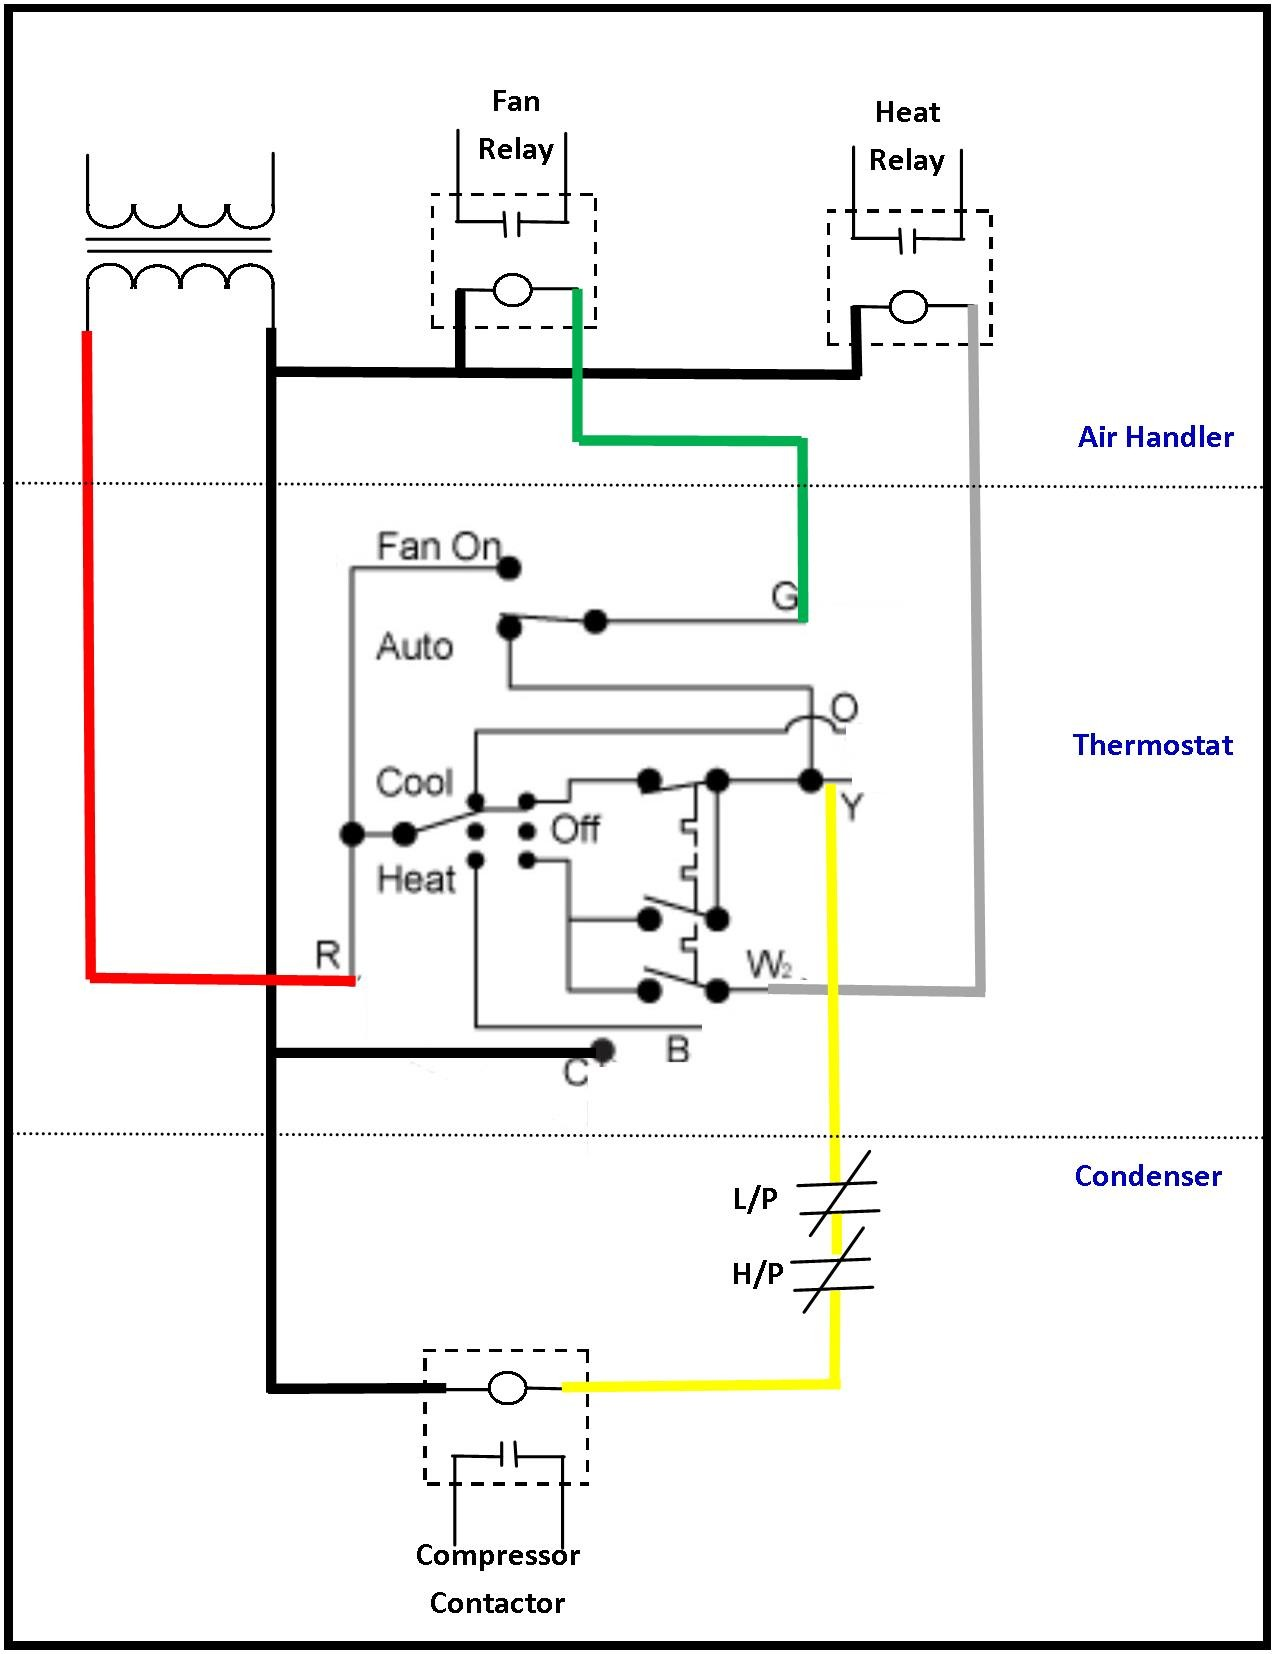 fan relay wiring diagram moreover 24 volt fan relay wiring diagram rh hashtravel co 12 Volt Battery Wiring Diagram 24 Volt System Wiring Diagram